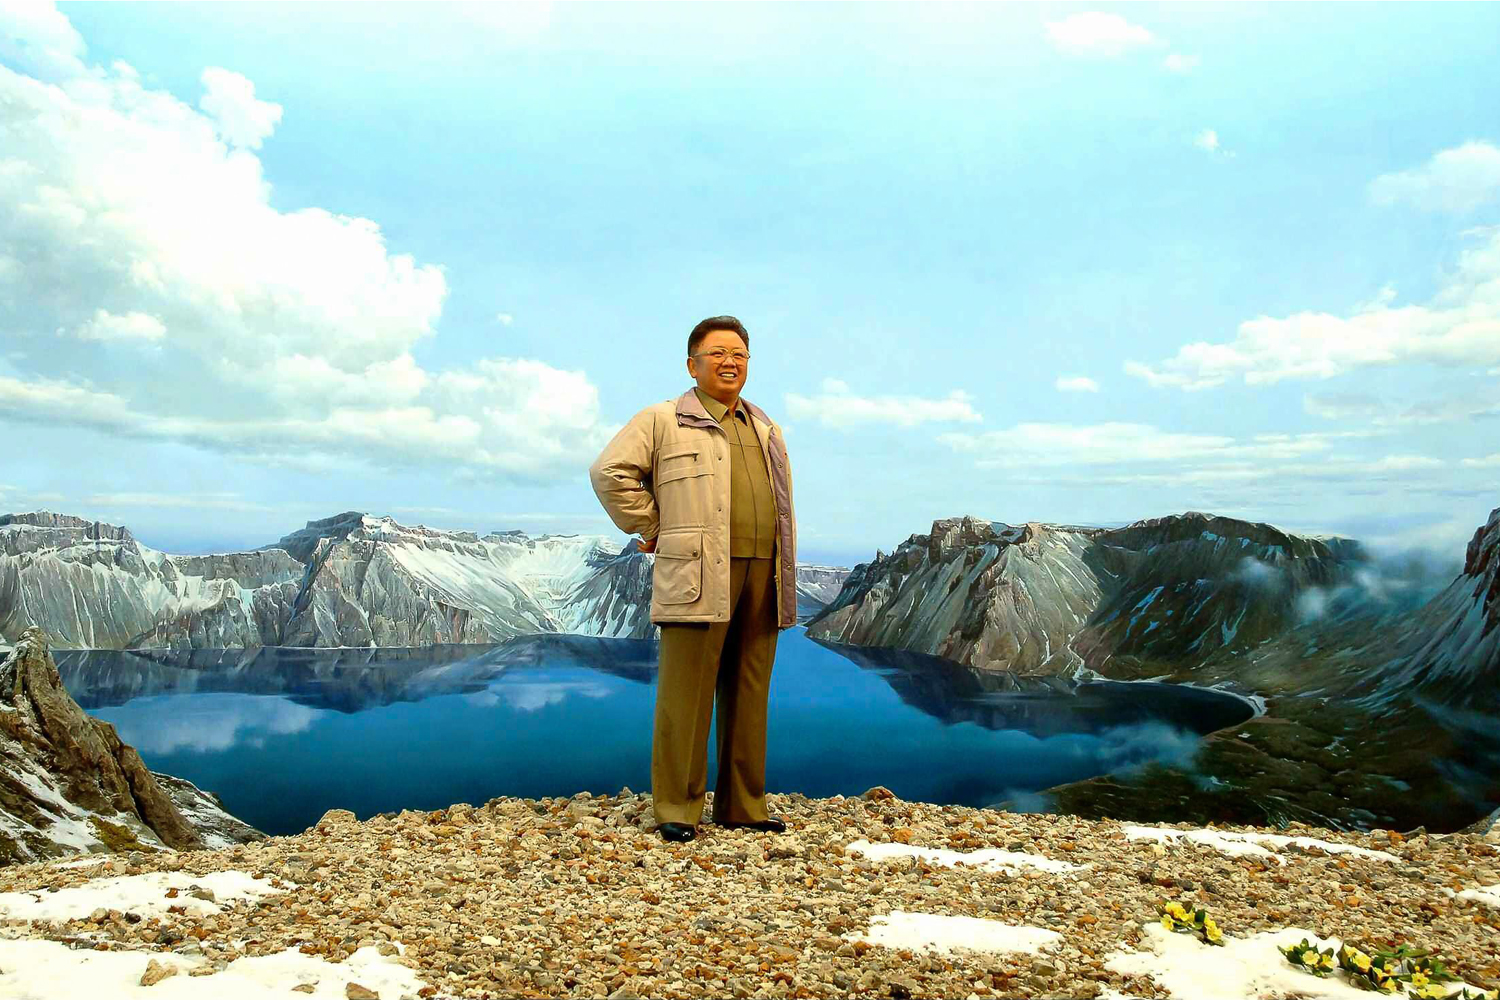 Apr. 9, 2014.  An undated photo released by the Rodong Sinmun, the newspaper of North Korea's ruling Workers Party, shows a wax statue of former North Korean leader Kim Jong-il set up at the International Friendship Exhibition, a museum complex near Mount Myohyang, north of Pyongyang, North Korea.